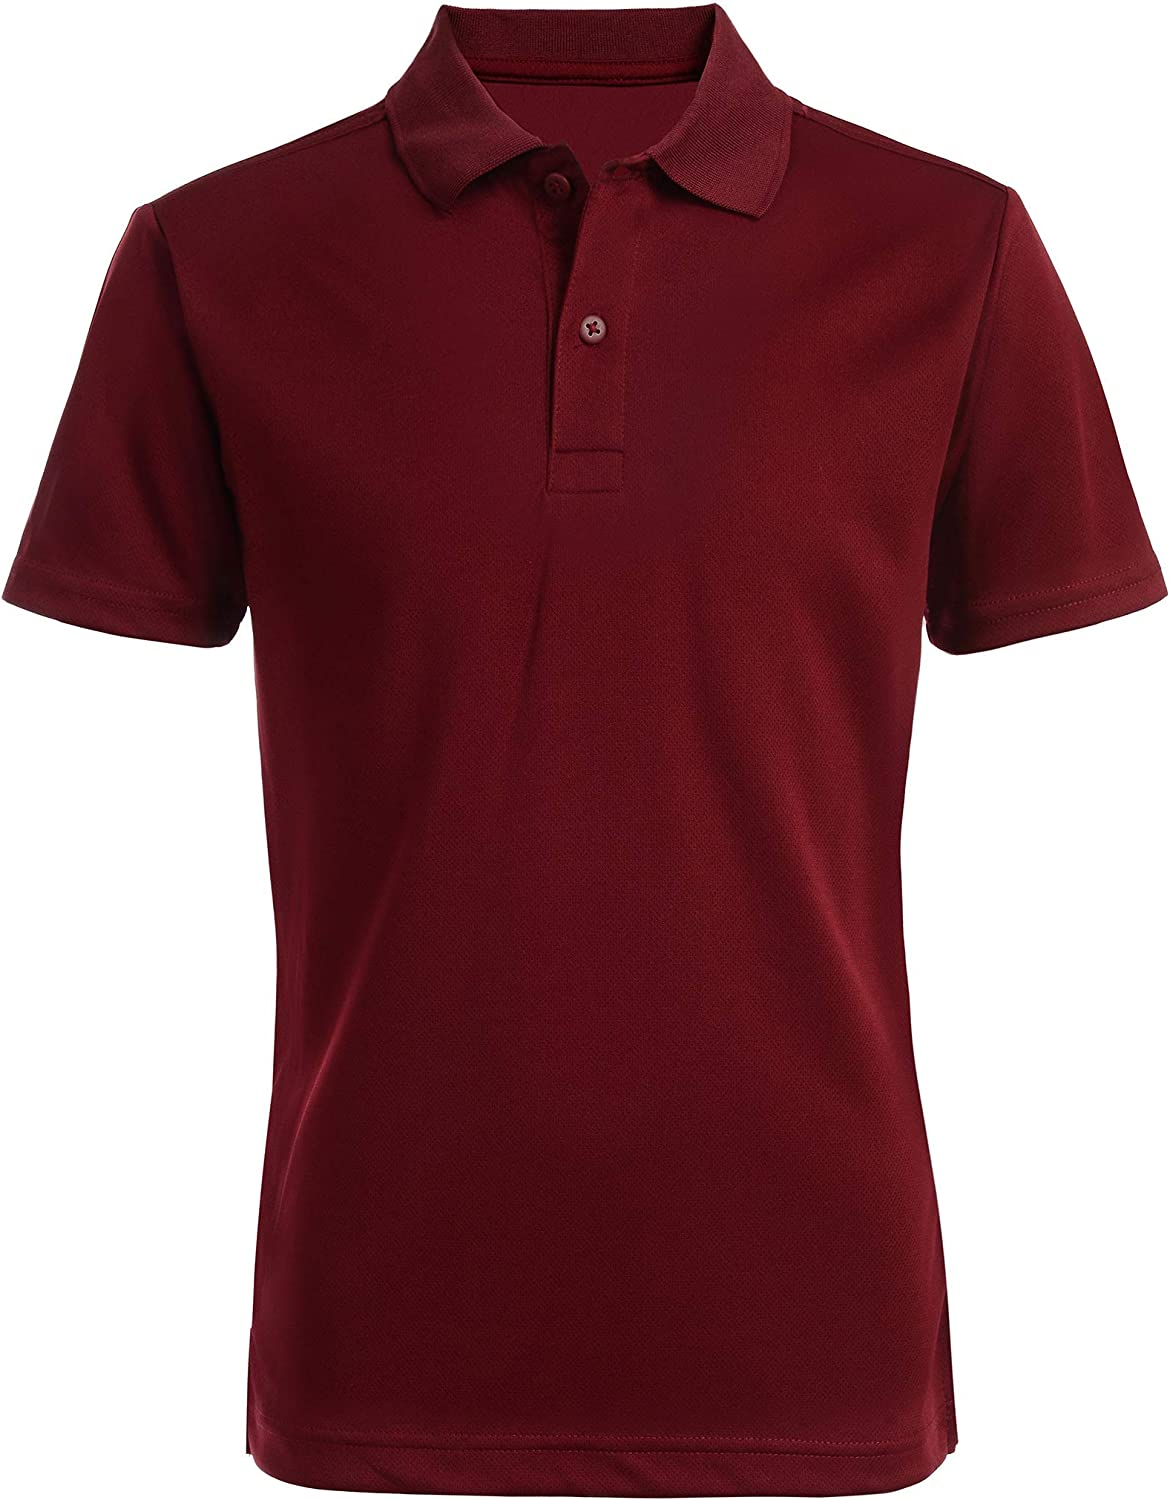 Top 10 Food And Wine Shirts